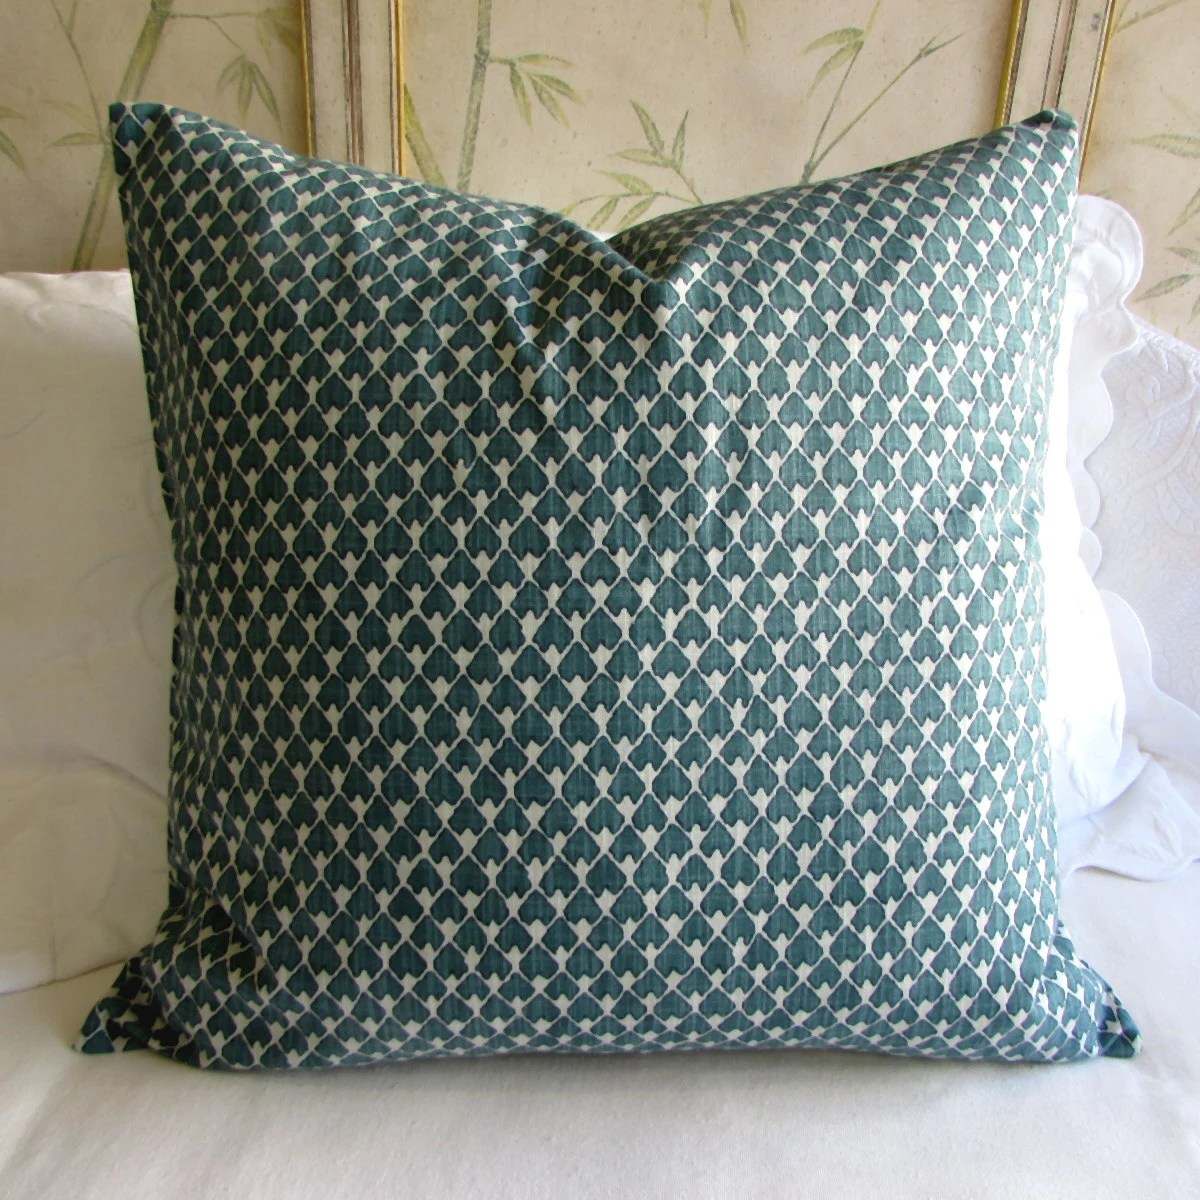 EURO PILLOW COVER 26x26 diegoprussian blue